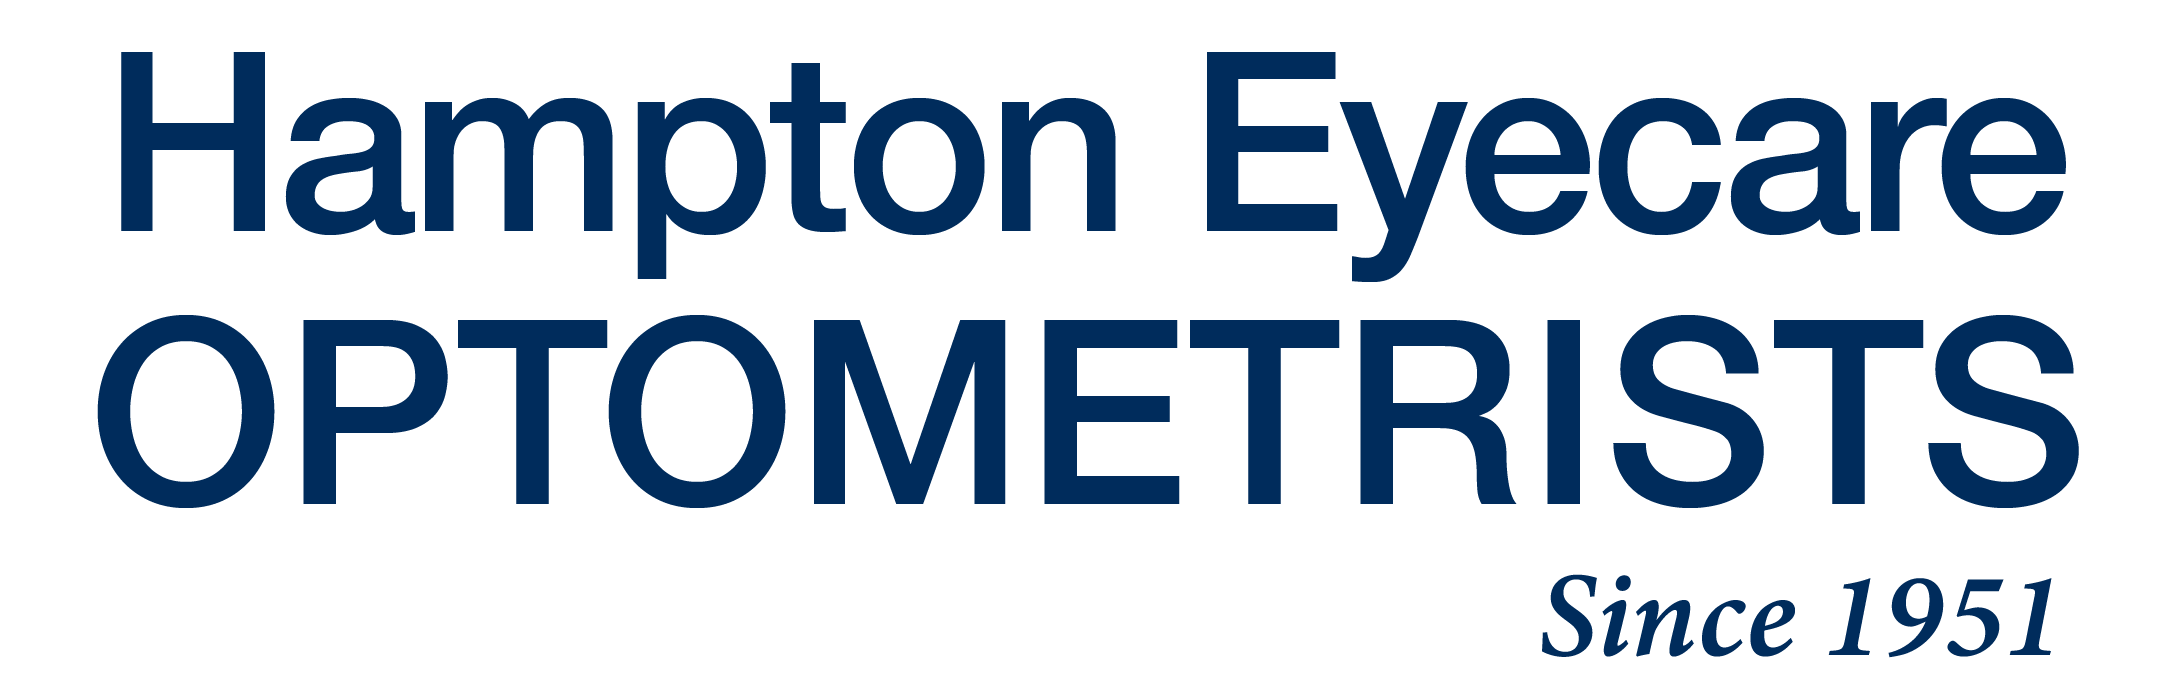 Hampton Eyecare Optometrists